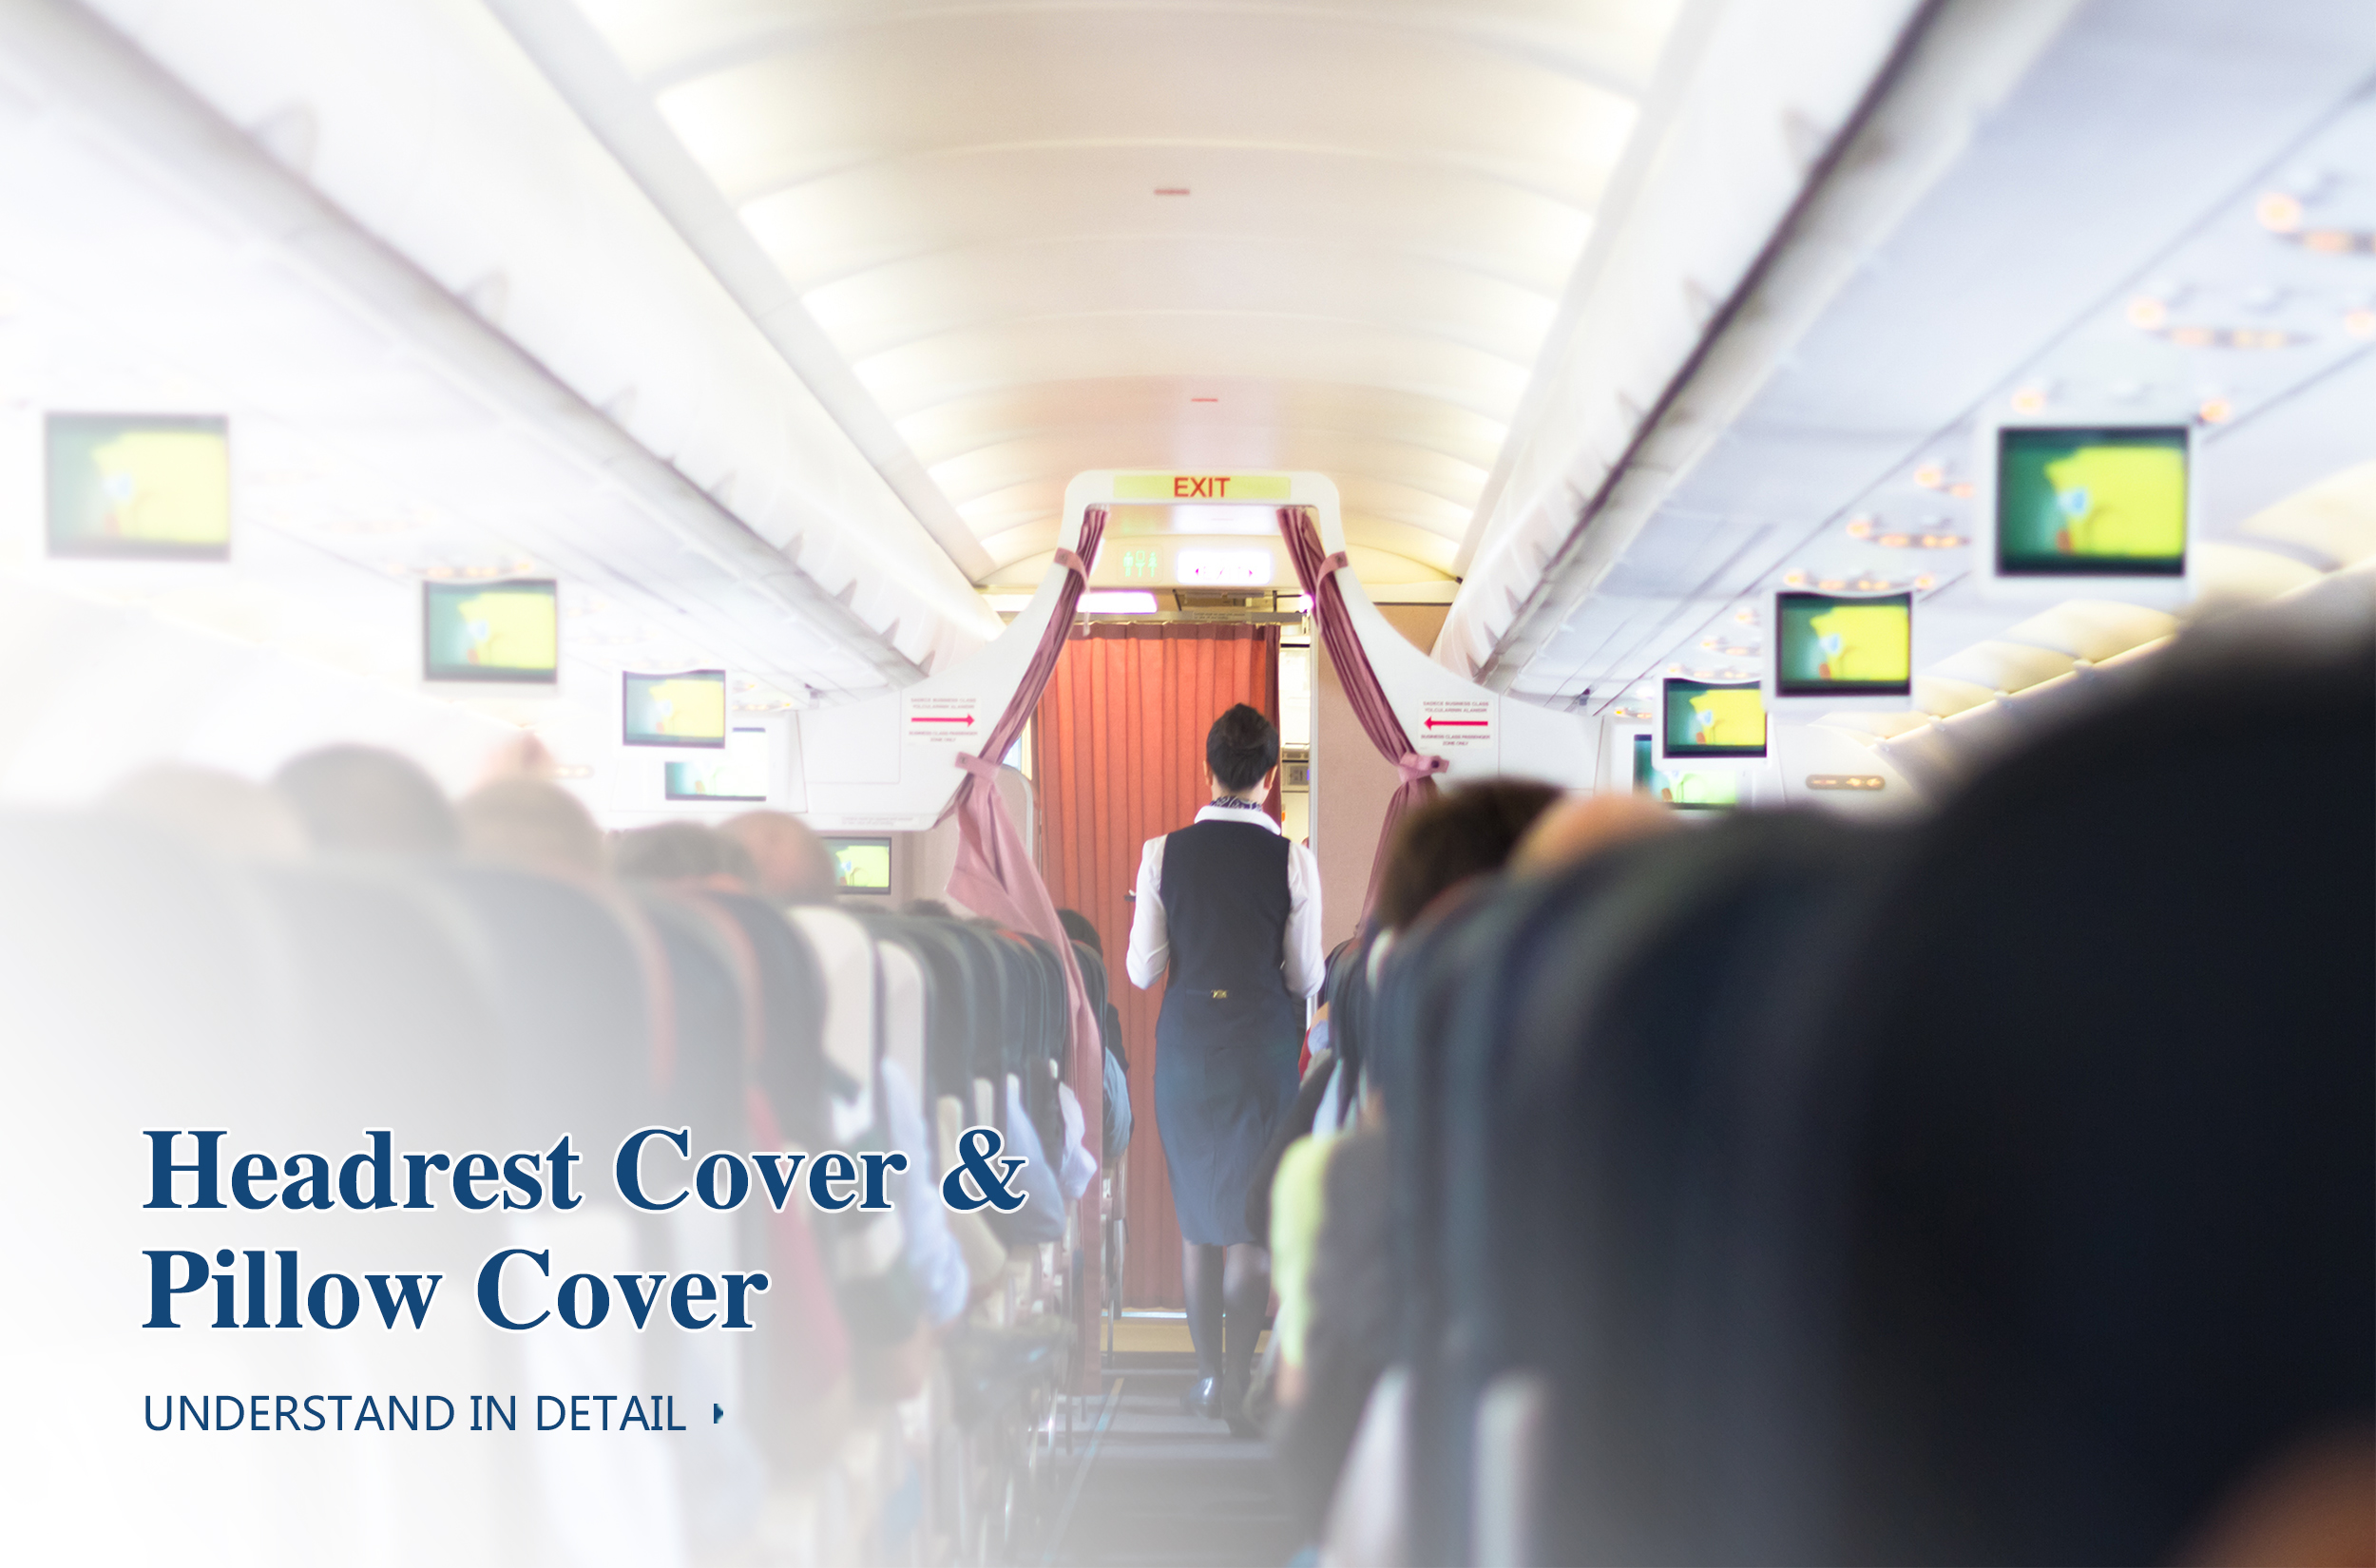 HEADREST COVER &PILLOW COVER